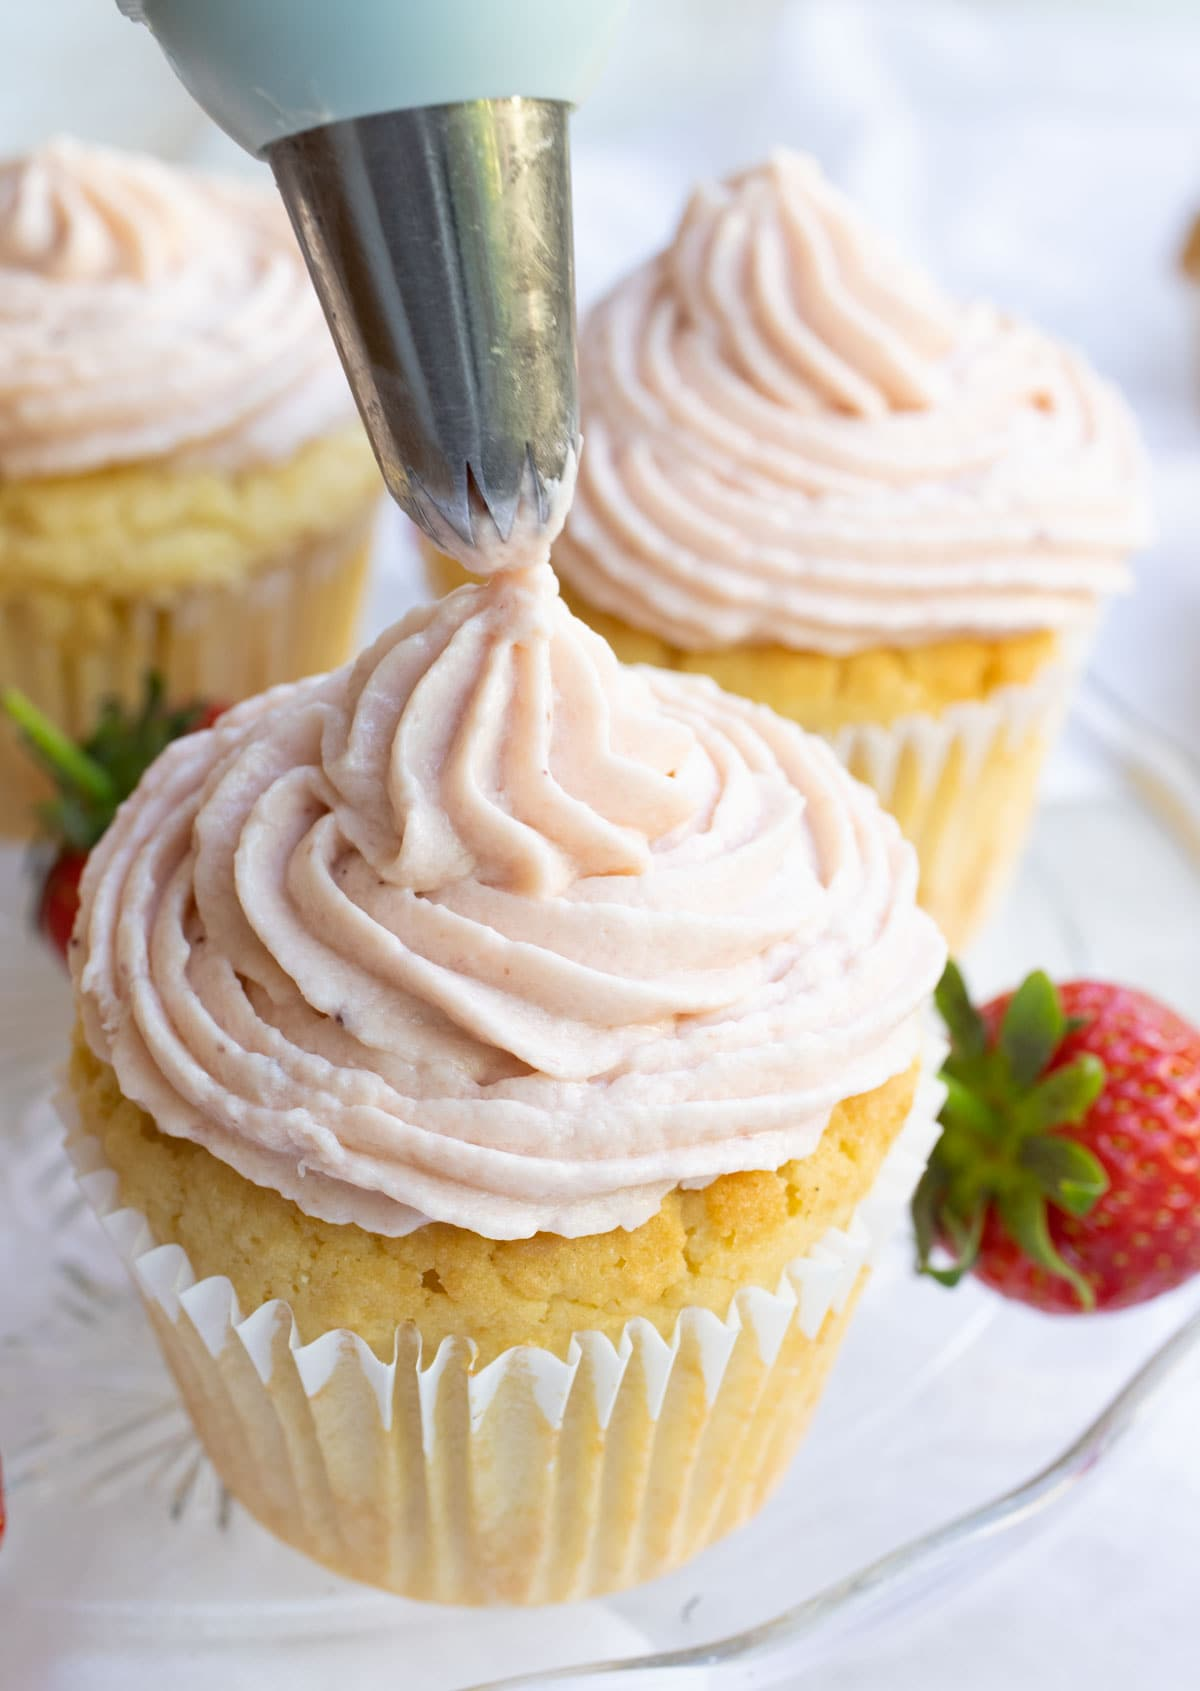 piping keto strawberry frosting onto a cupcake